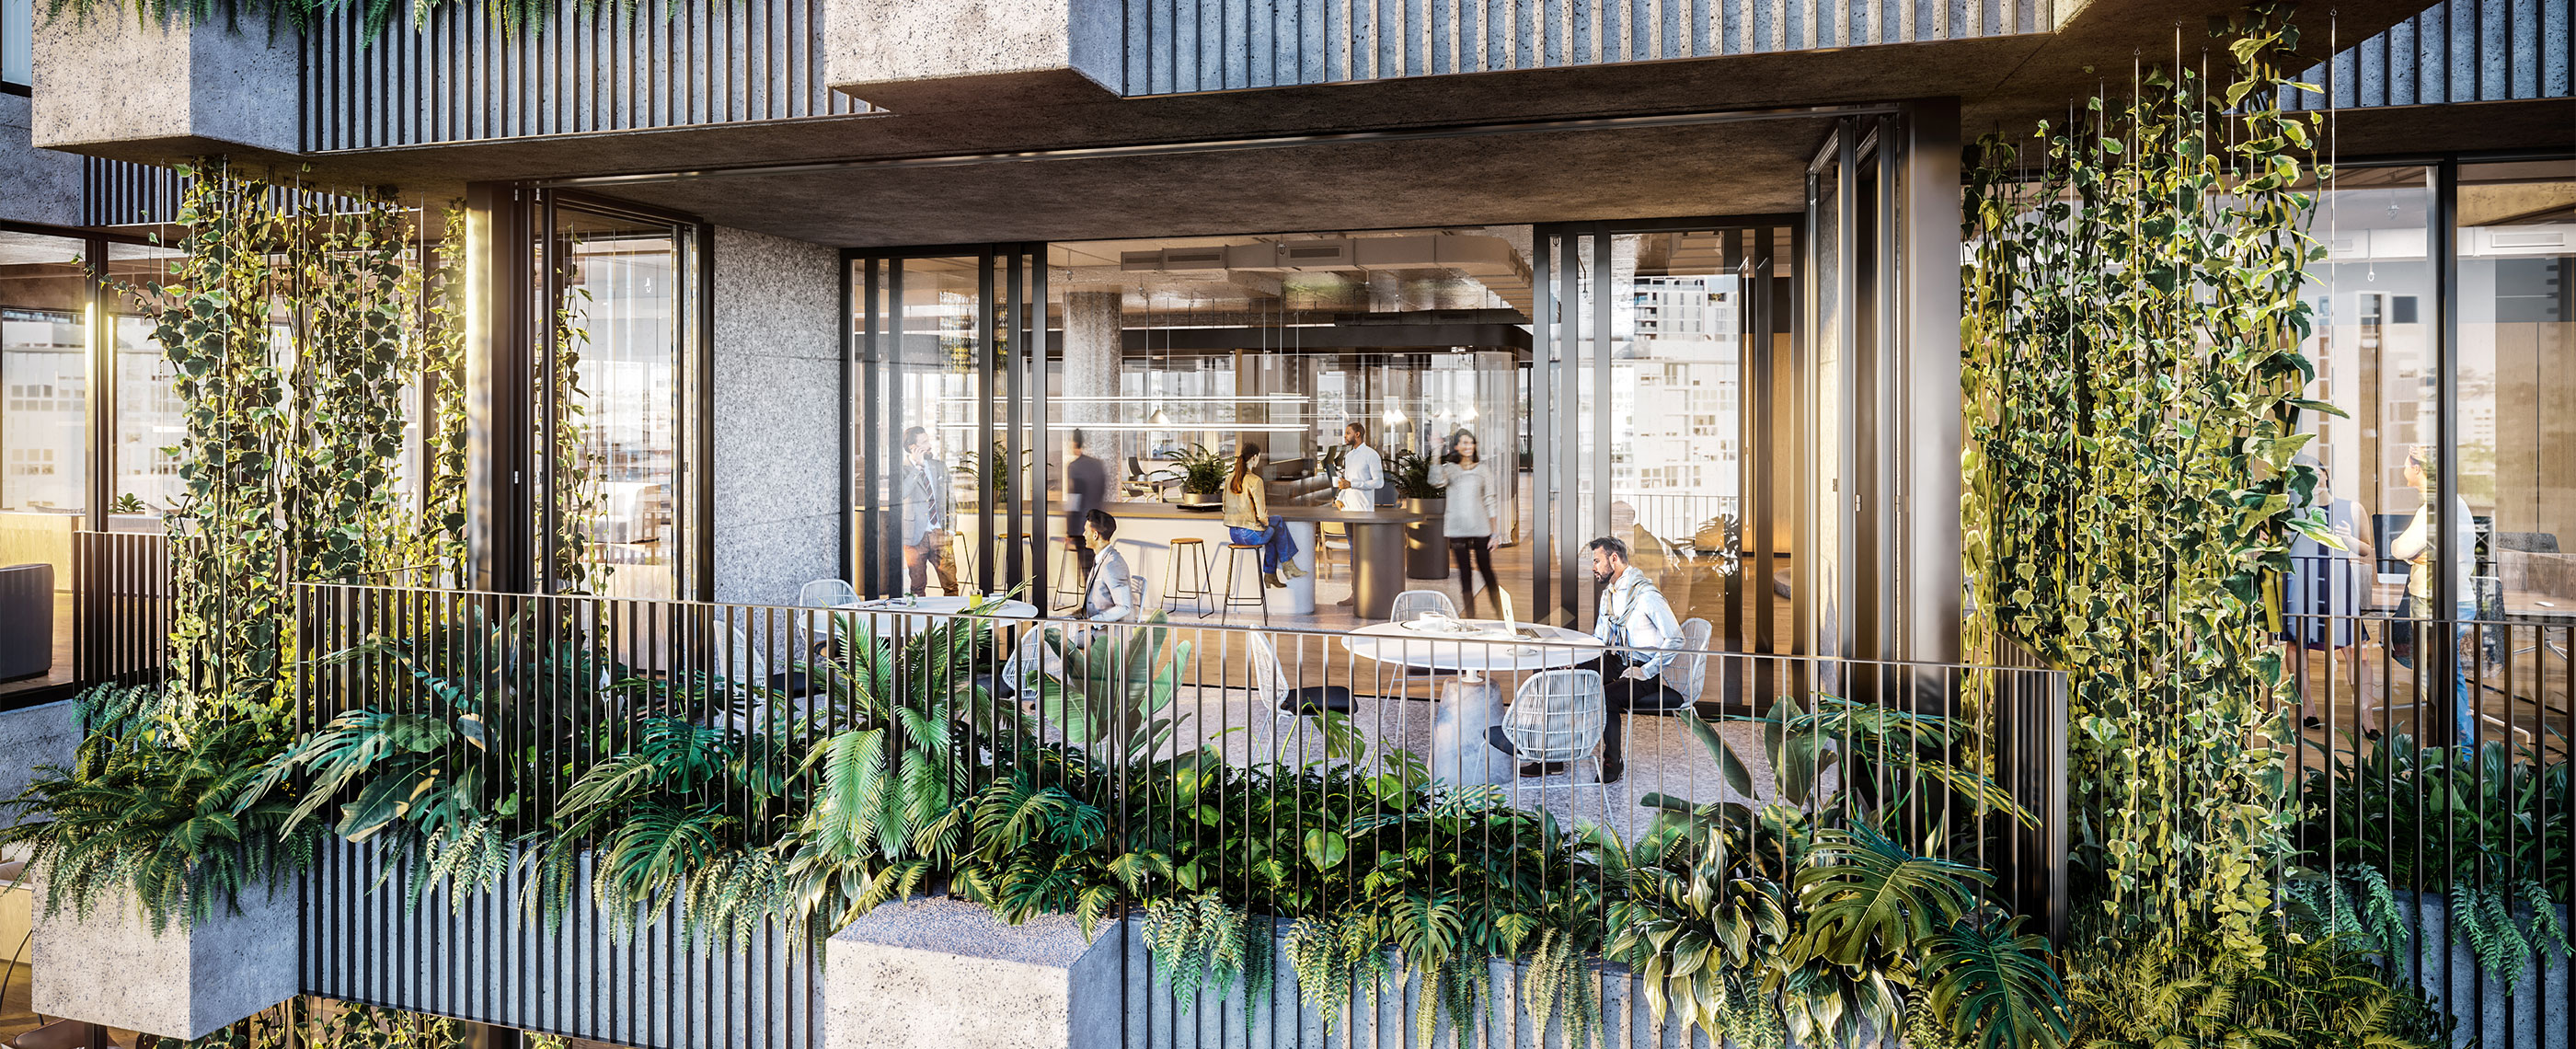 Stratton Street Rothelowman Architecture project